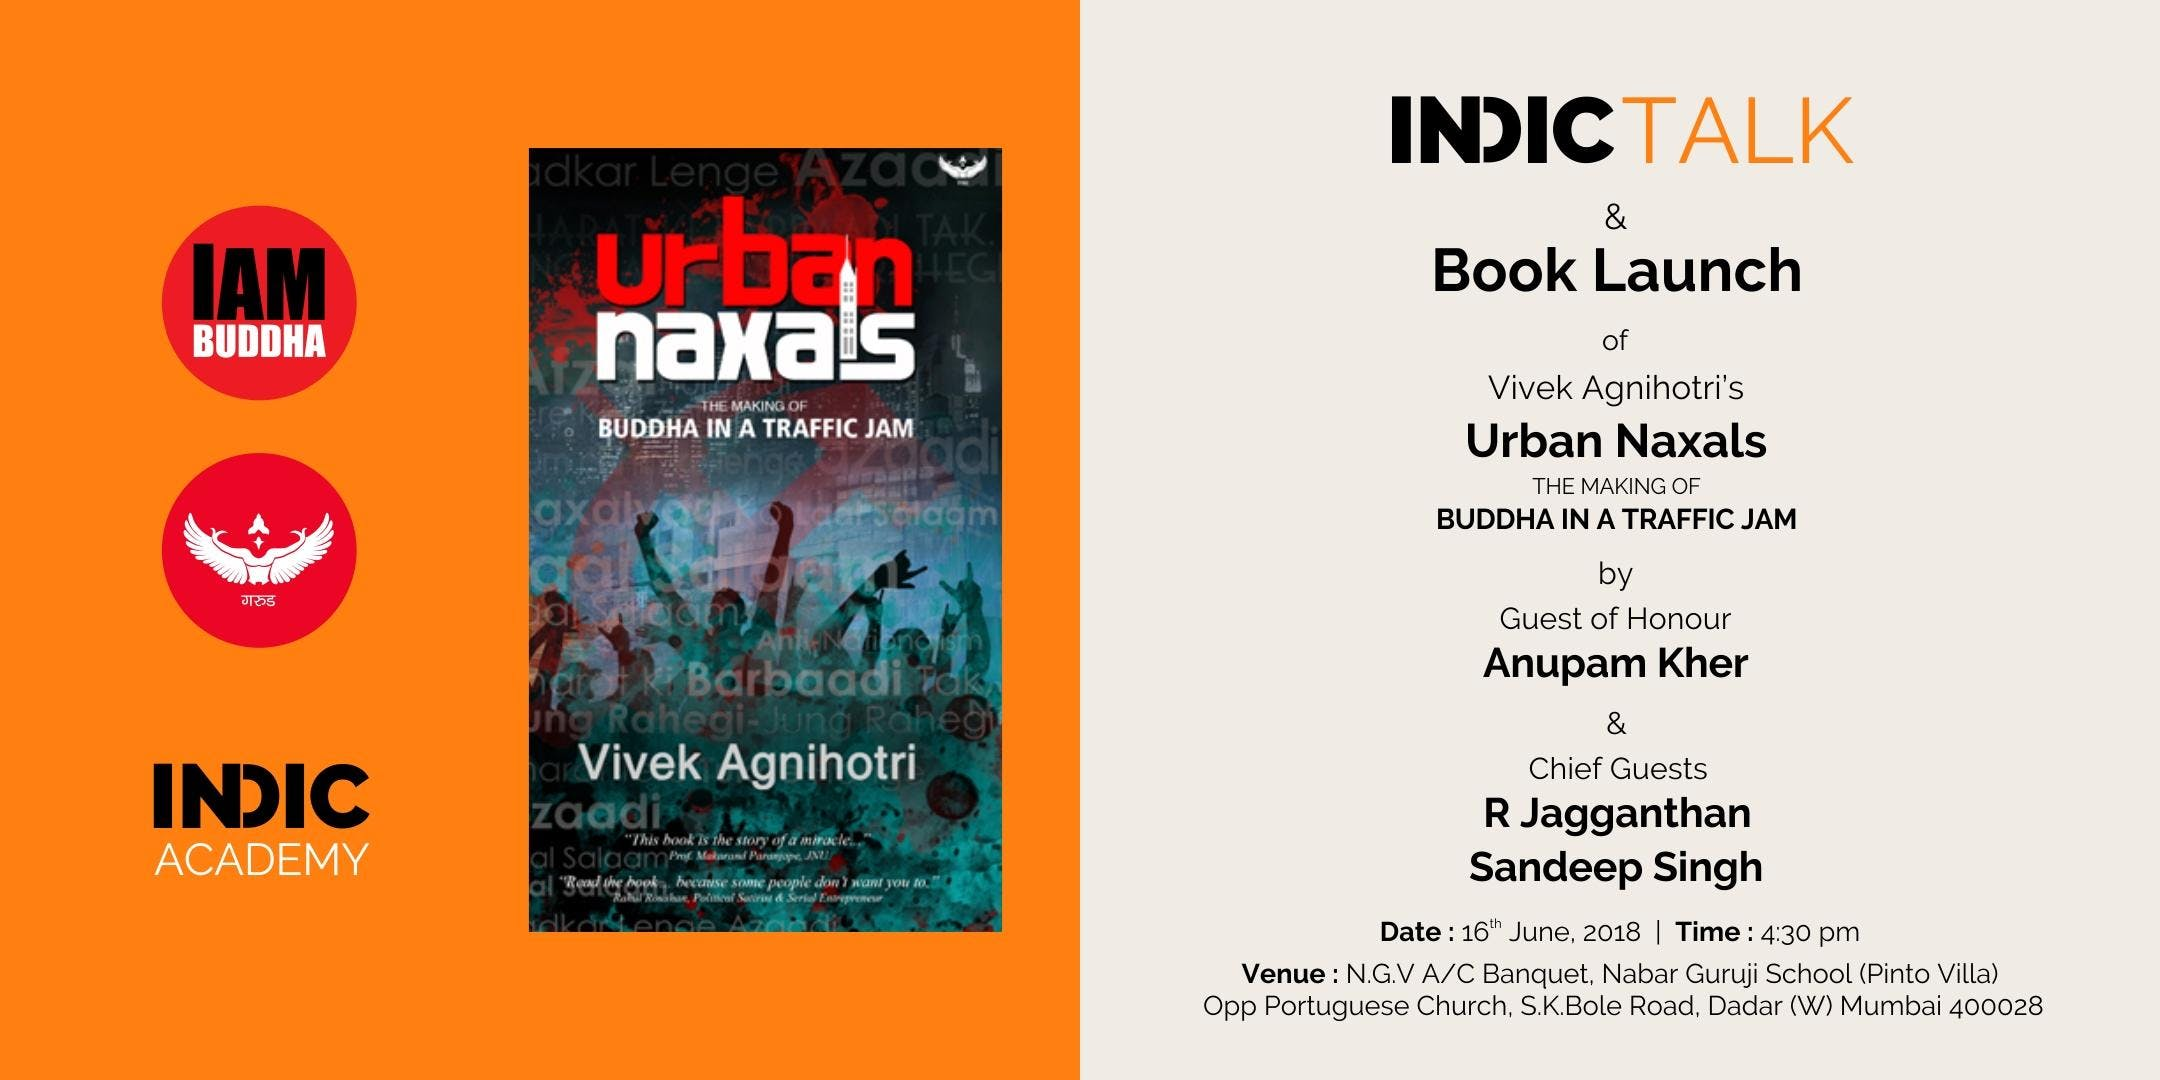 Book Launch Urban Naxals by Vivek Agnihotri